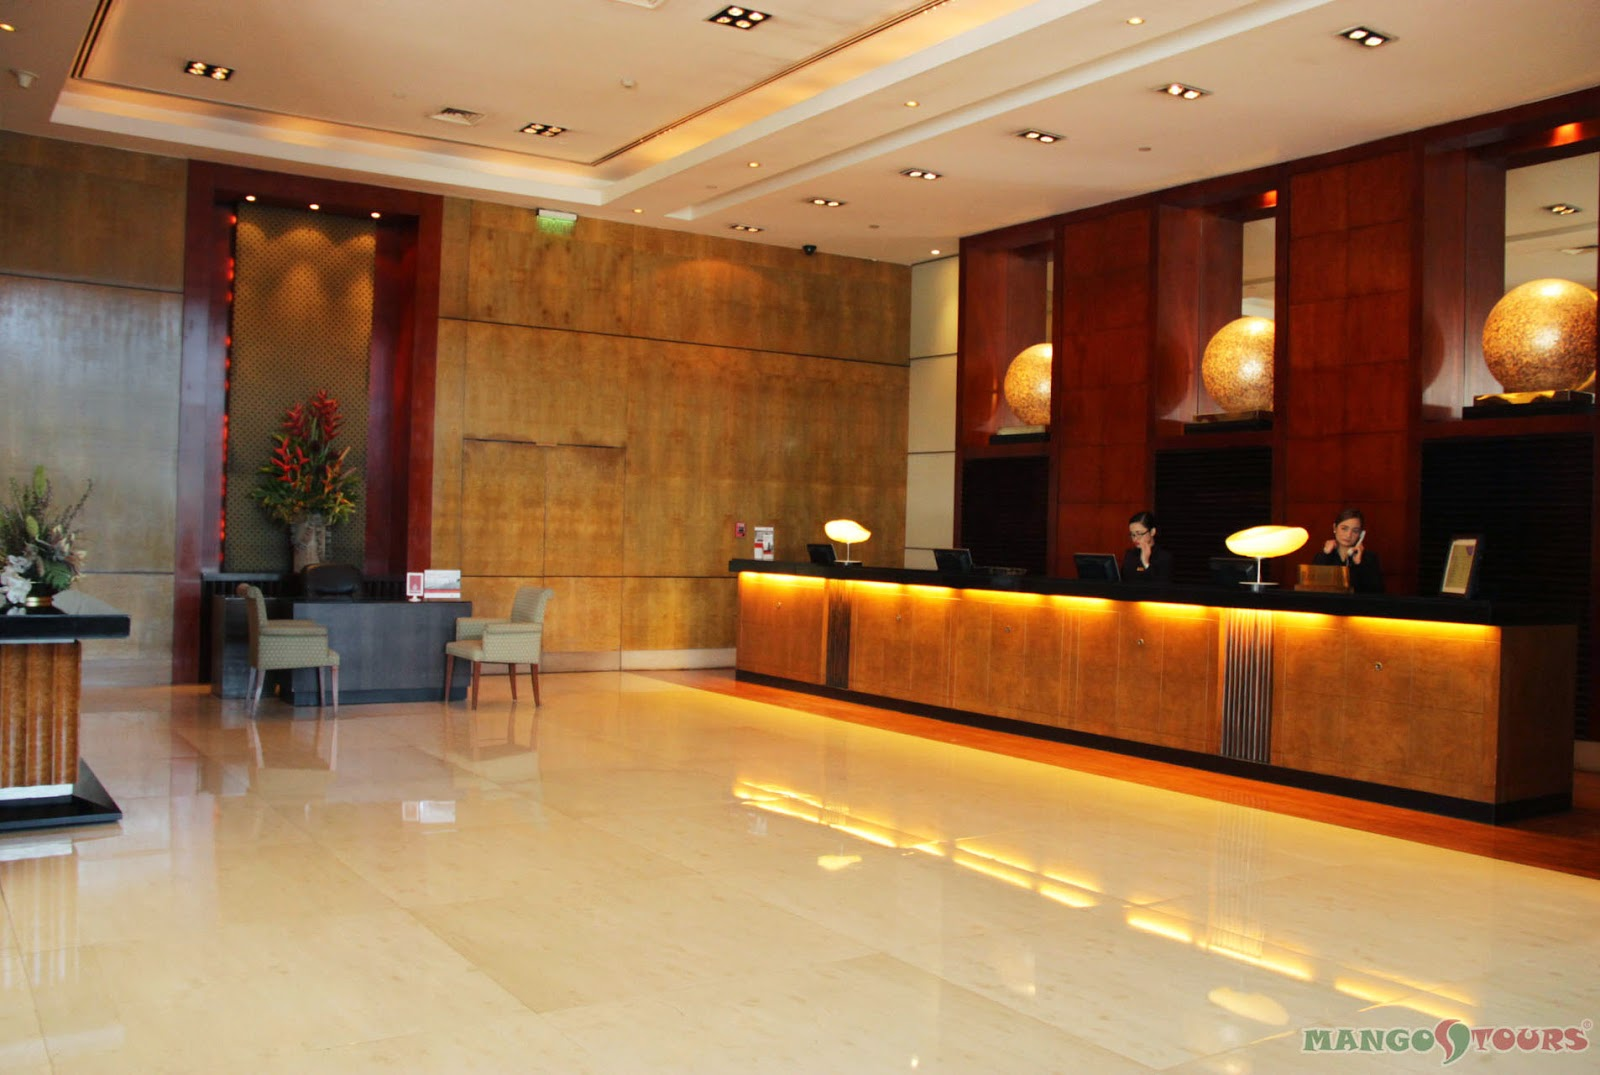 Mango Tours Crowne Plaza Manila Galleria Hotel Lobby Philippines